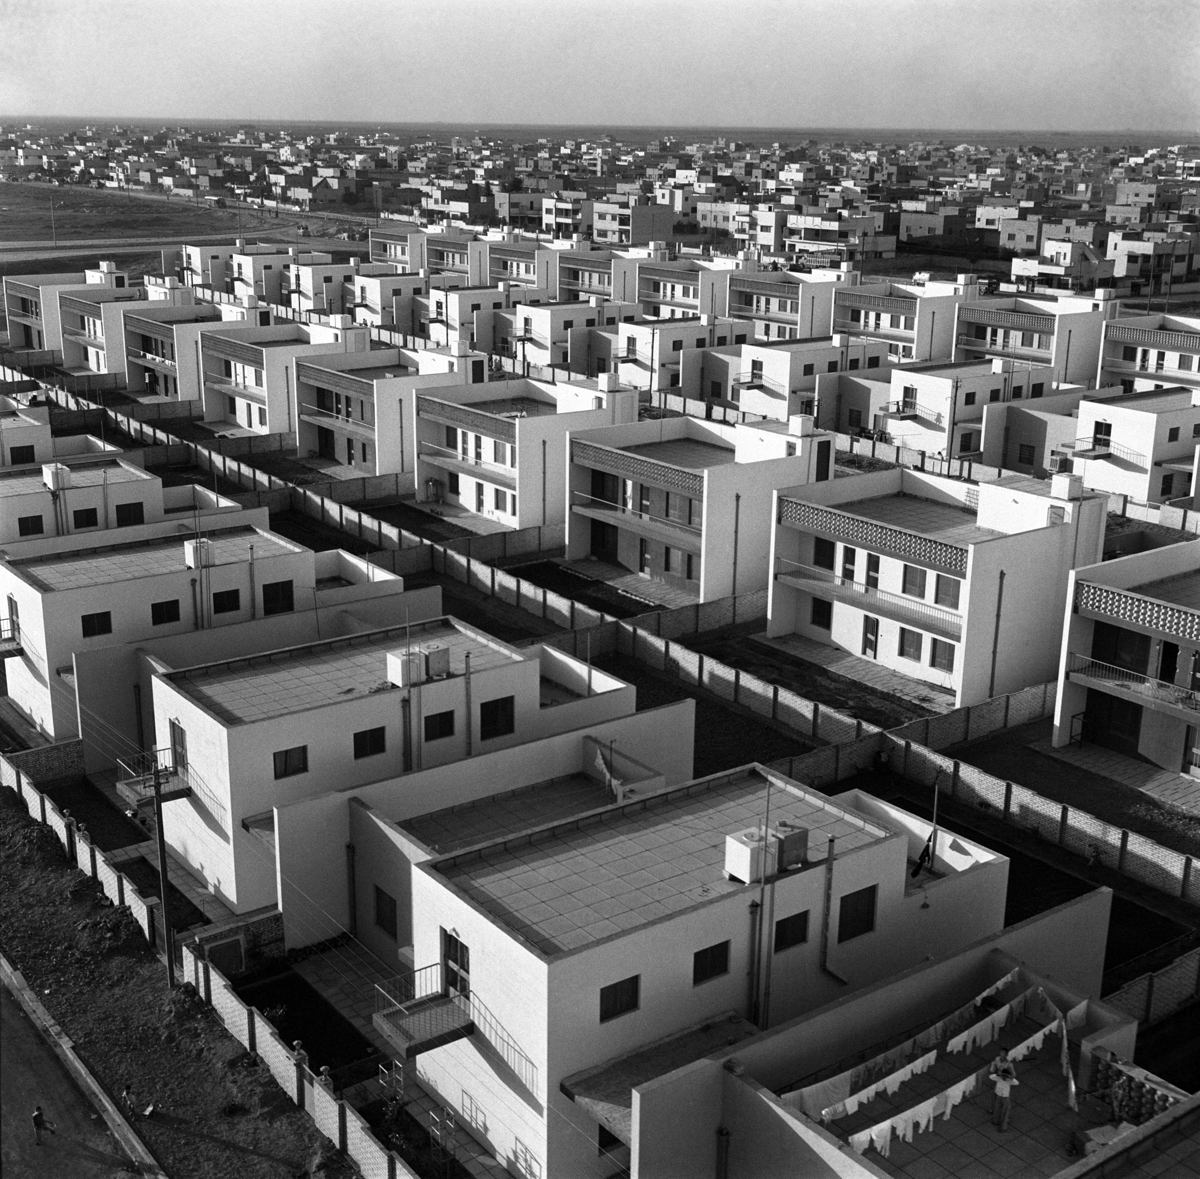 Latif Al Ani, Housing project office, Yarmouk, Baghdad, 1962, (2019) Inkjet print on Hahnemuhle fine art photo rag pearl paper 100 x 100 cm Edition of 3 + 2 AP (LAA/PH 016). Latif Al Ani Collection, courtesy of the Arab Image Foundation, Beirut and Gallery Isabelle van den Eynde, Dubai.